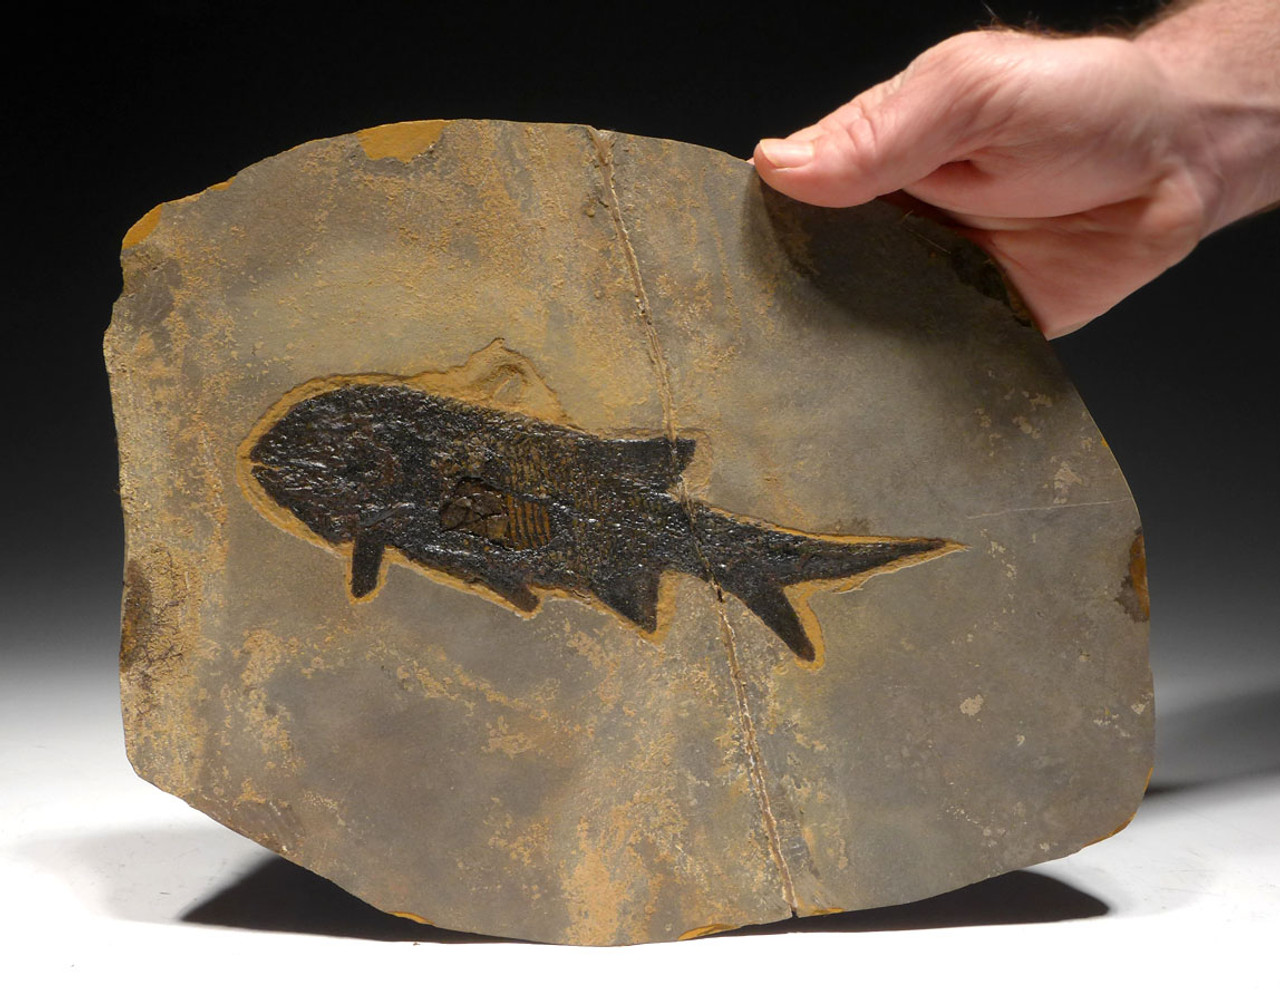 F158 - LARGE SUPREME PARAMBLYPTERUS PERMIAN FISH FOSSIL FROM BEFORE THE DINOSAURS